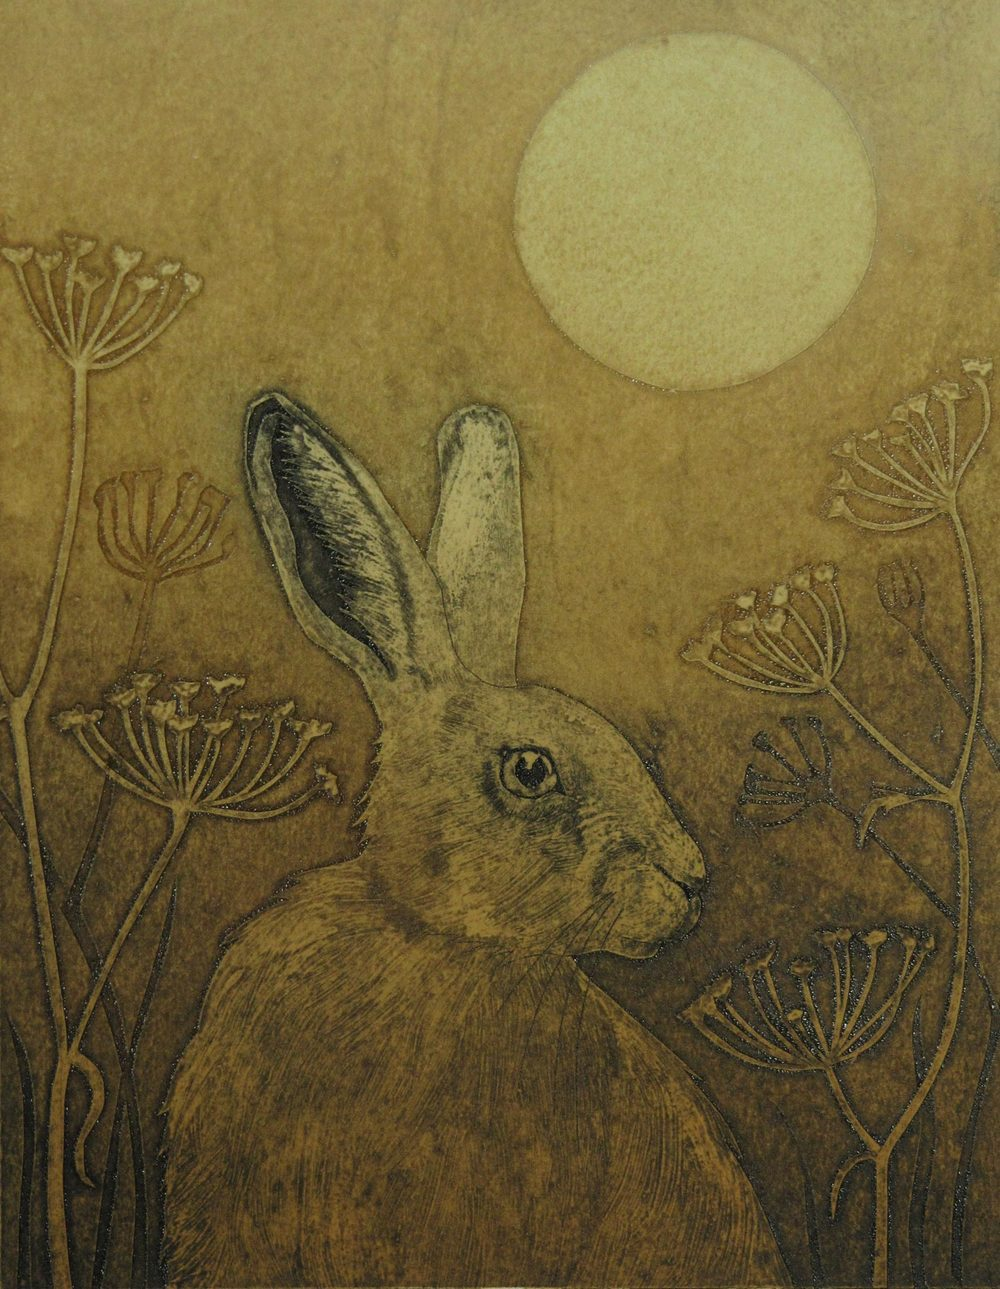 The Watcher   collagraph   EDITION SOLD OUT